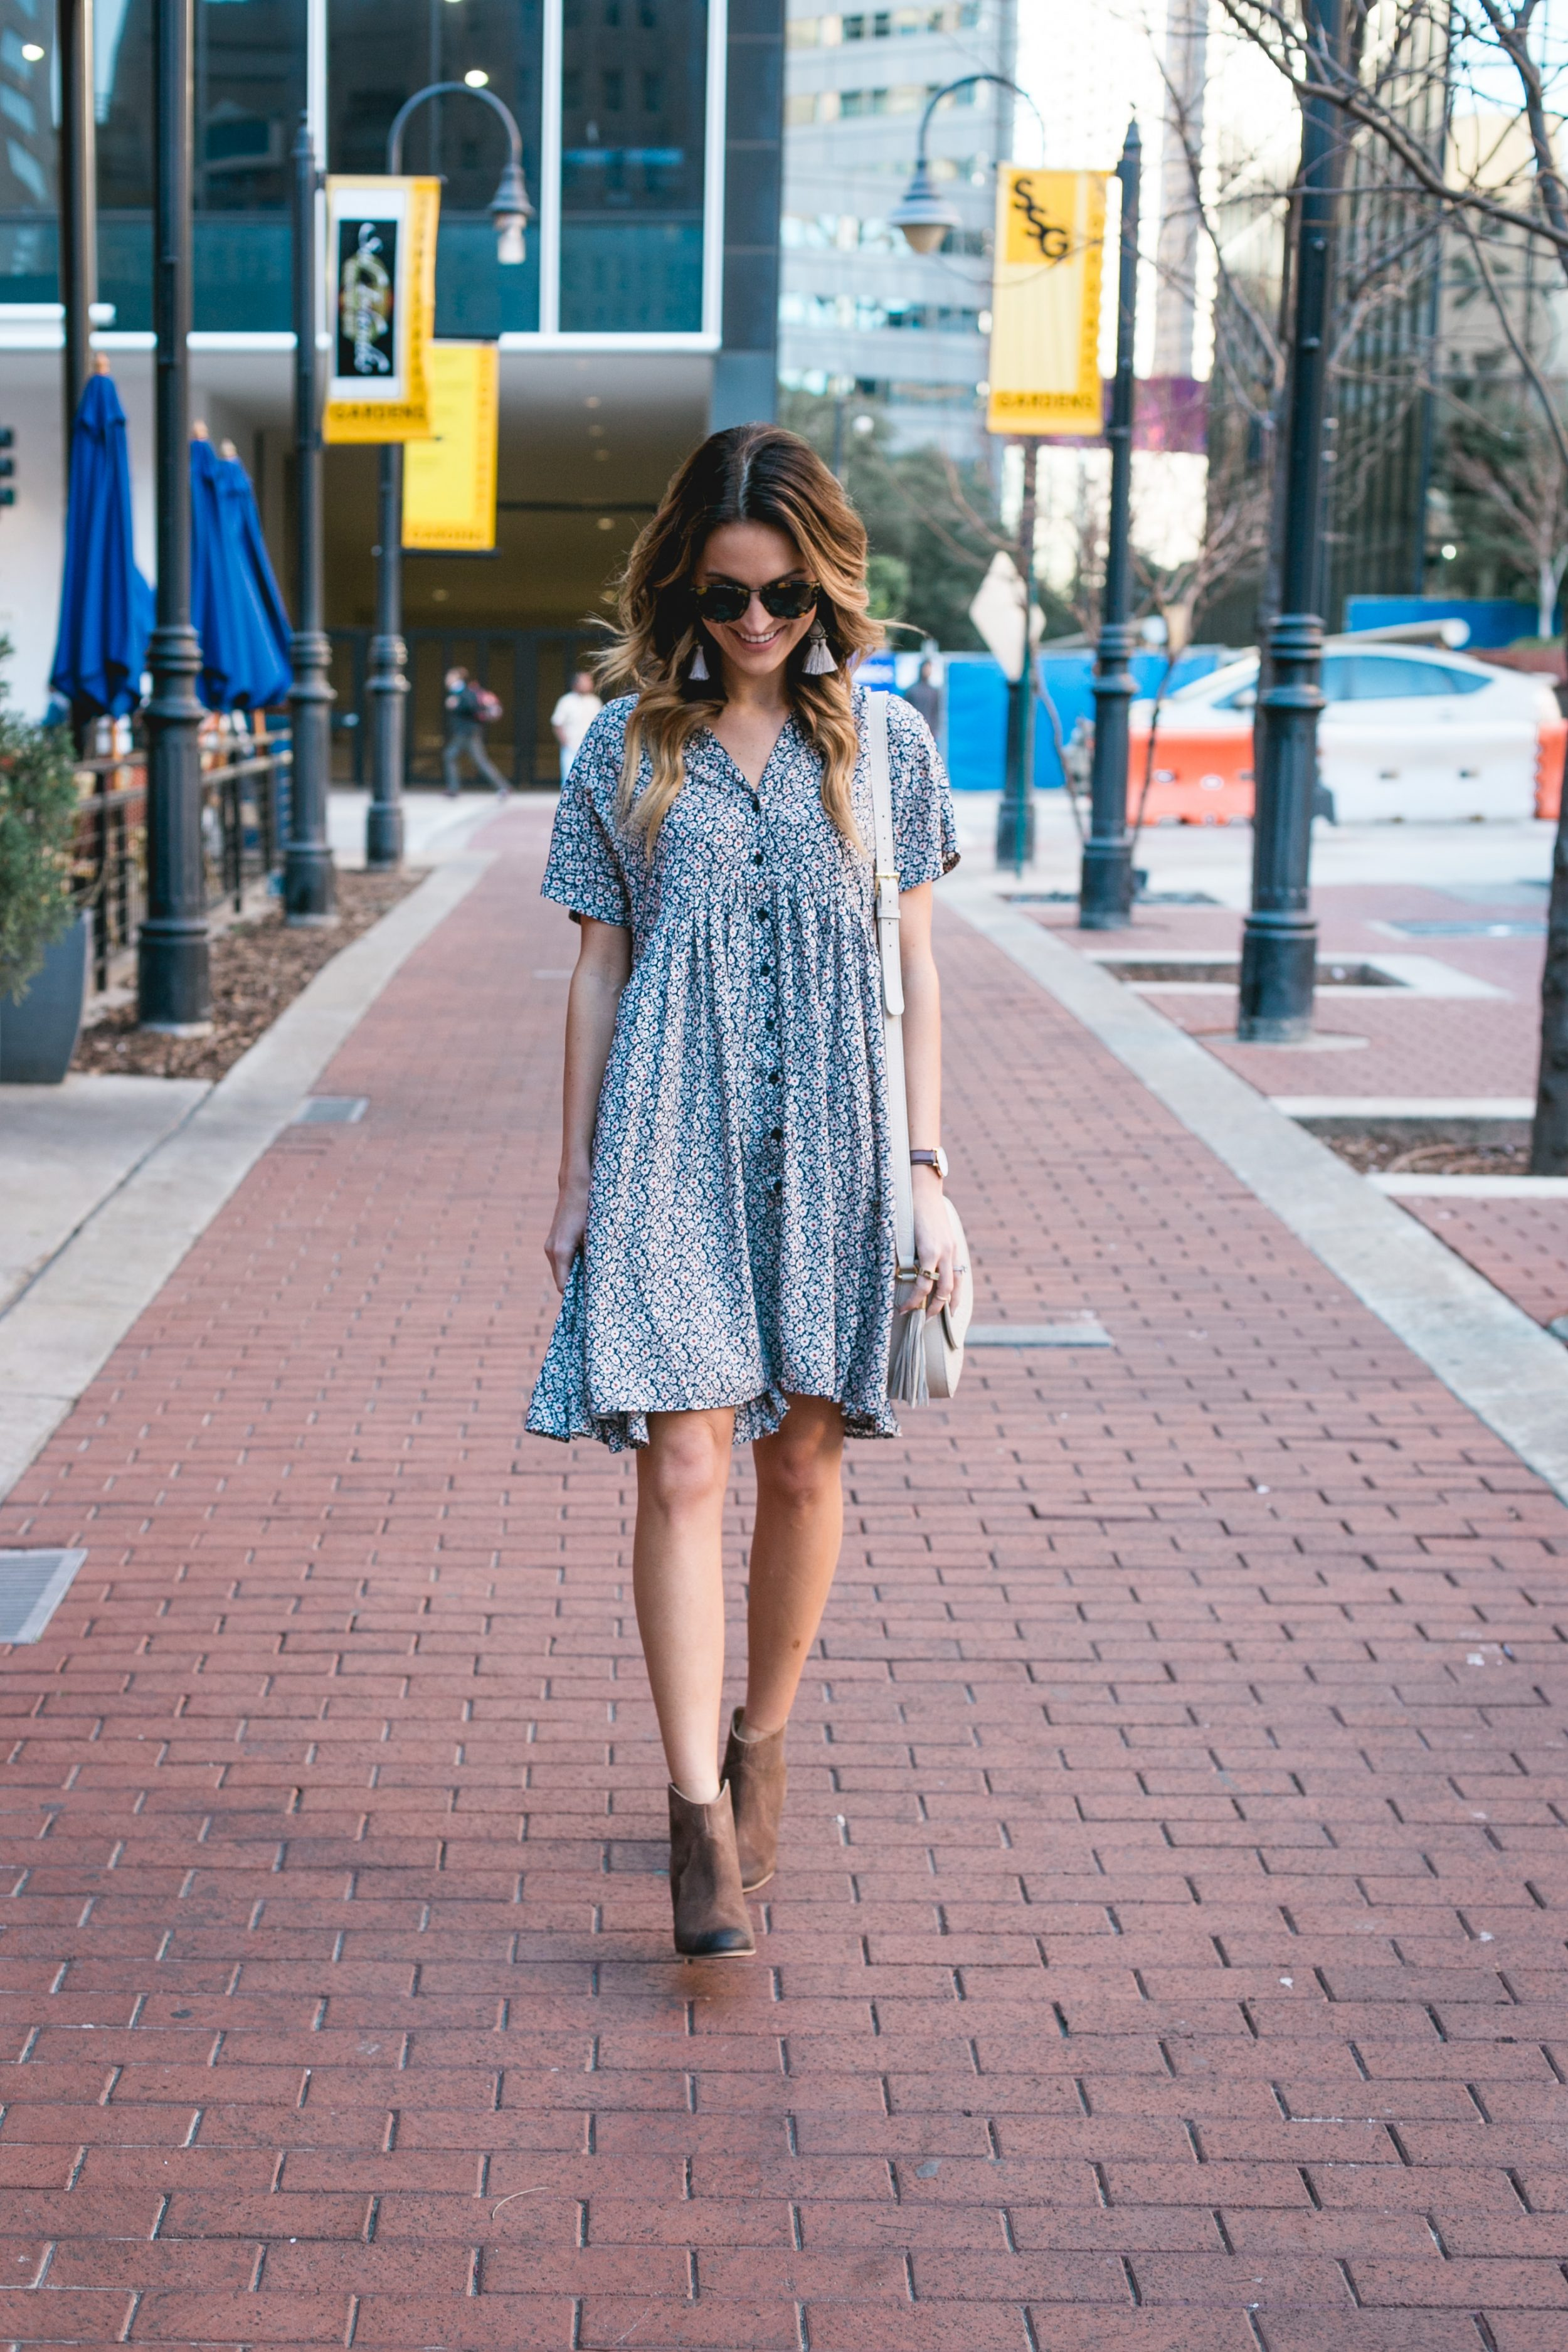 anthropologie dress + booties under $100